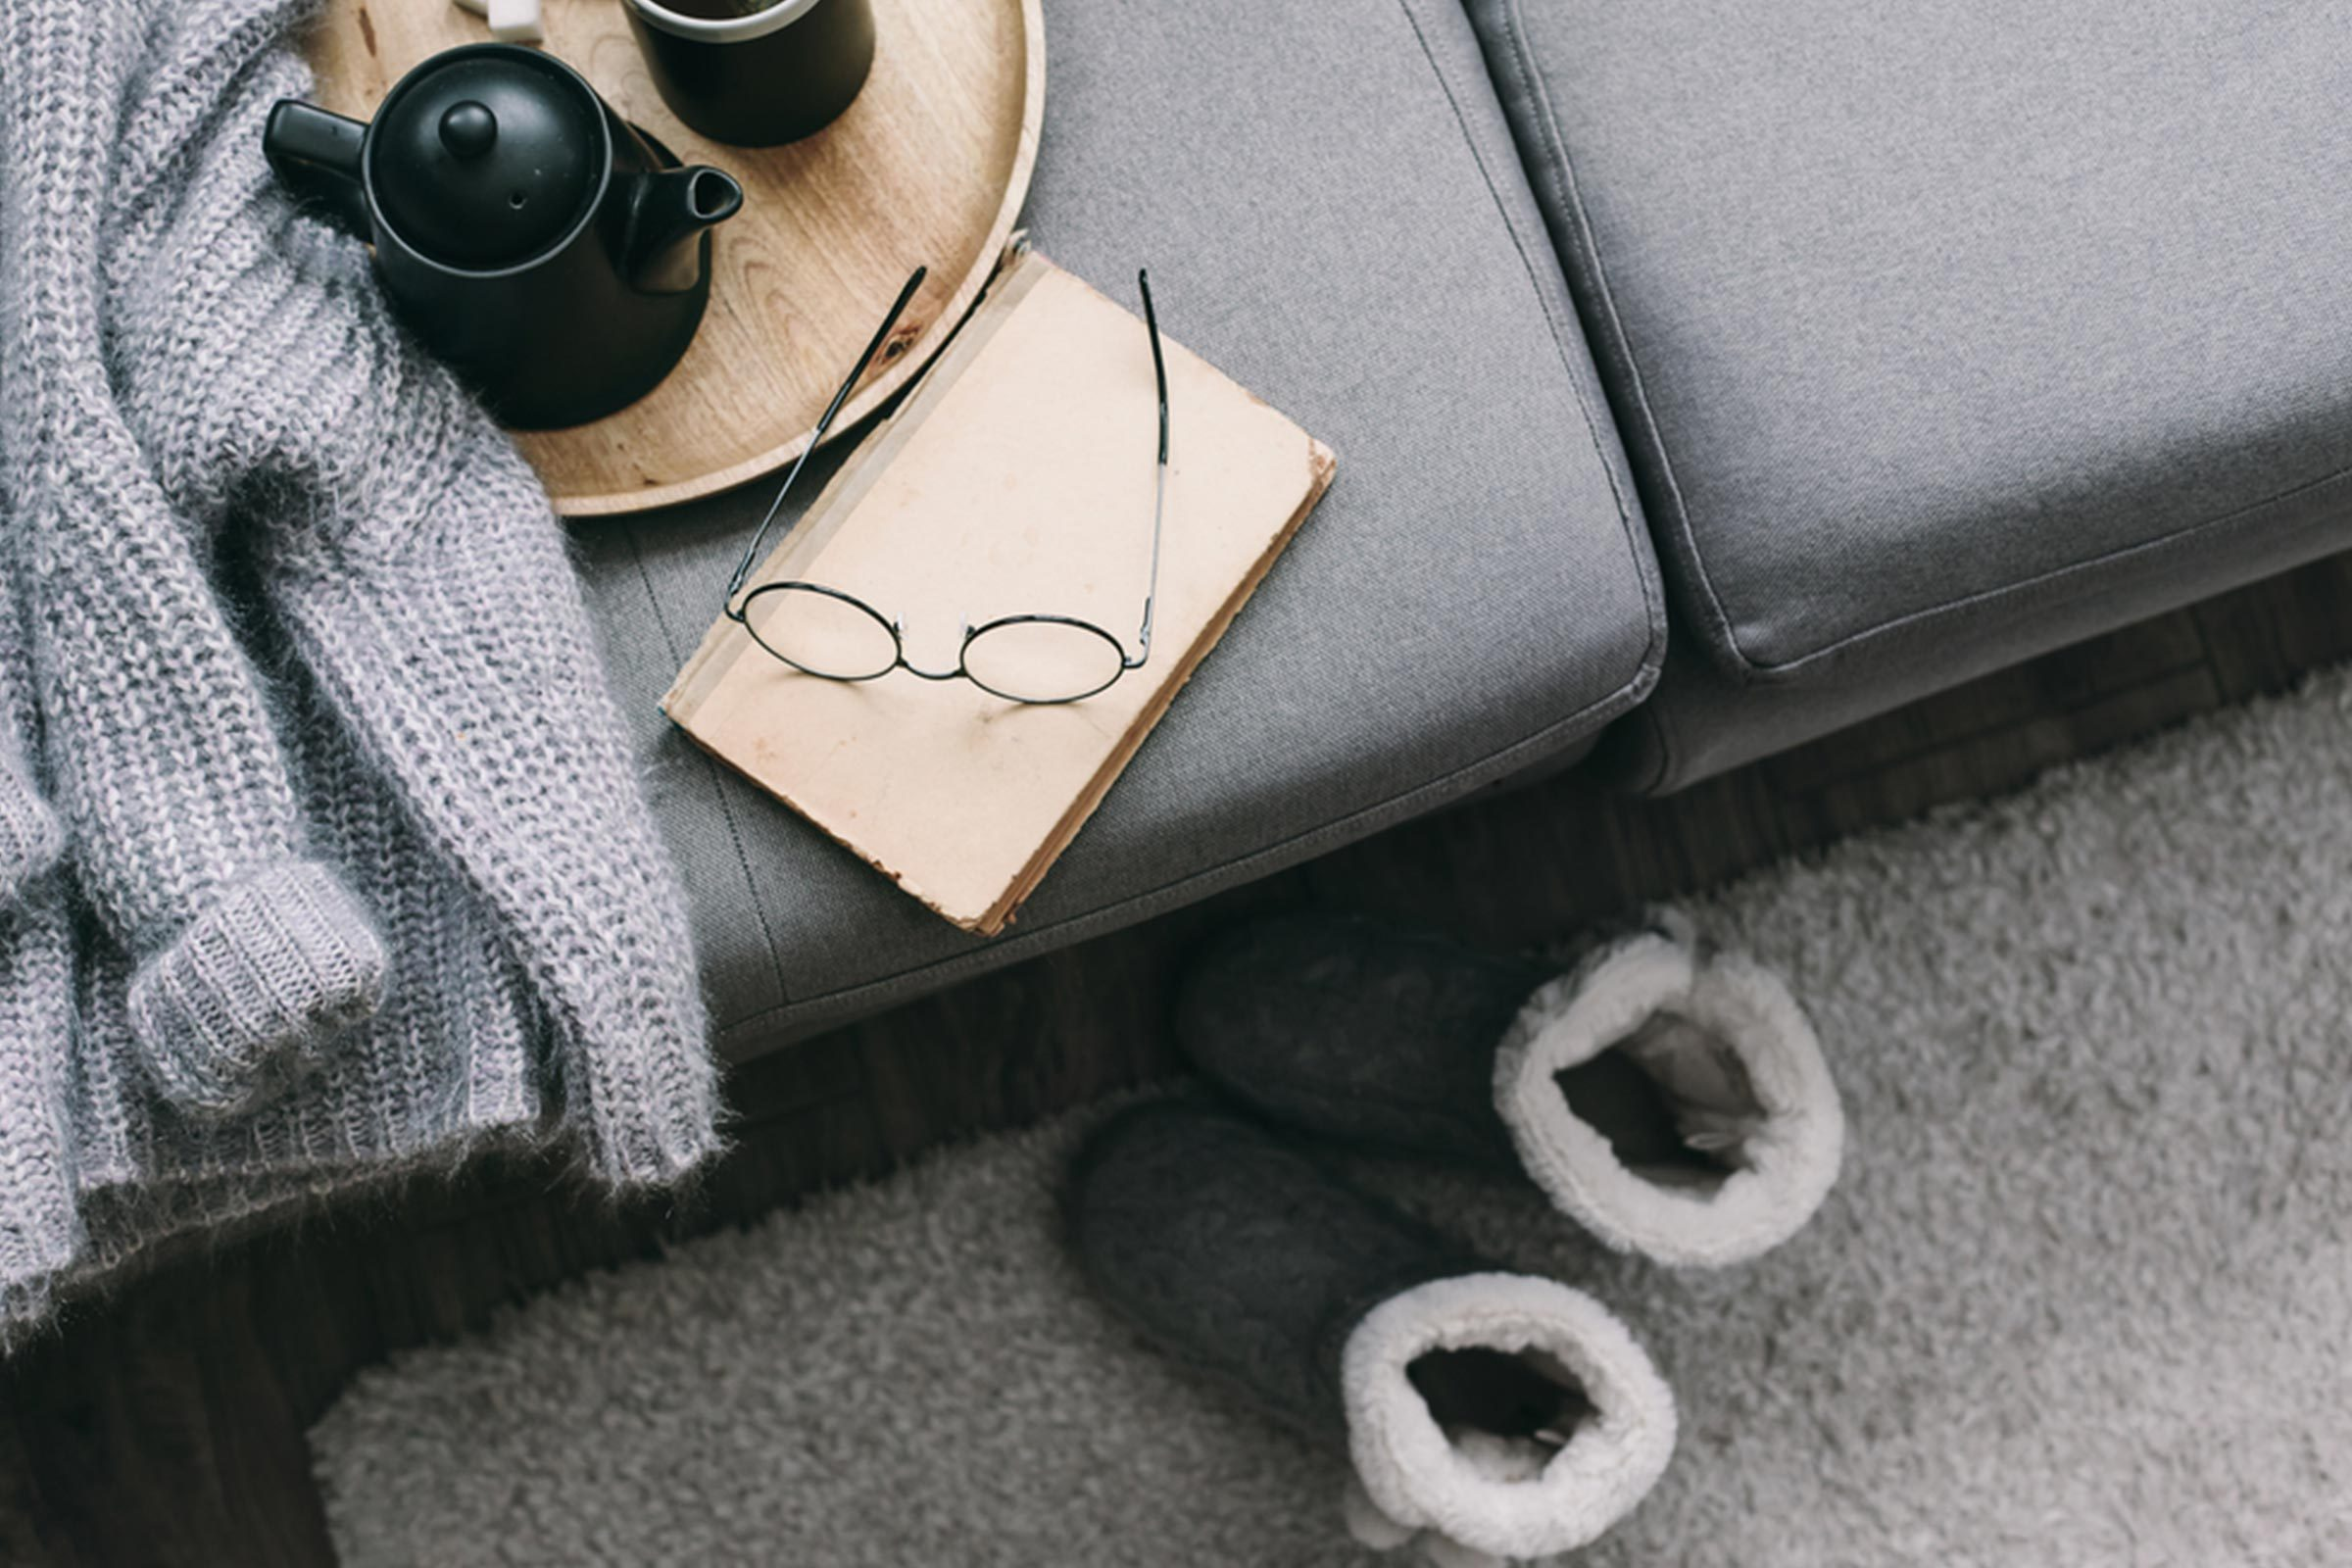 couch with glasses, slippers and journal